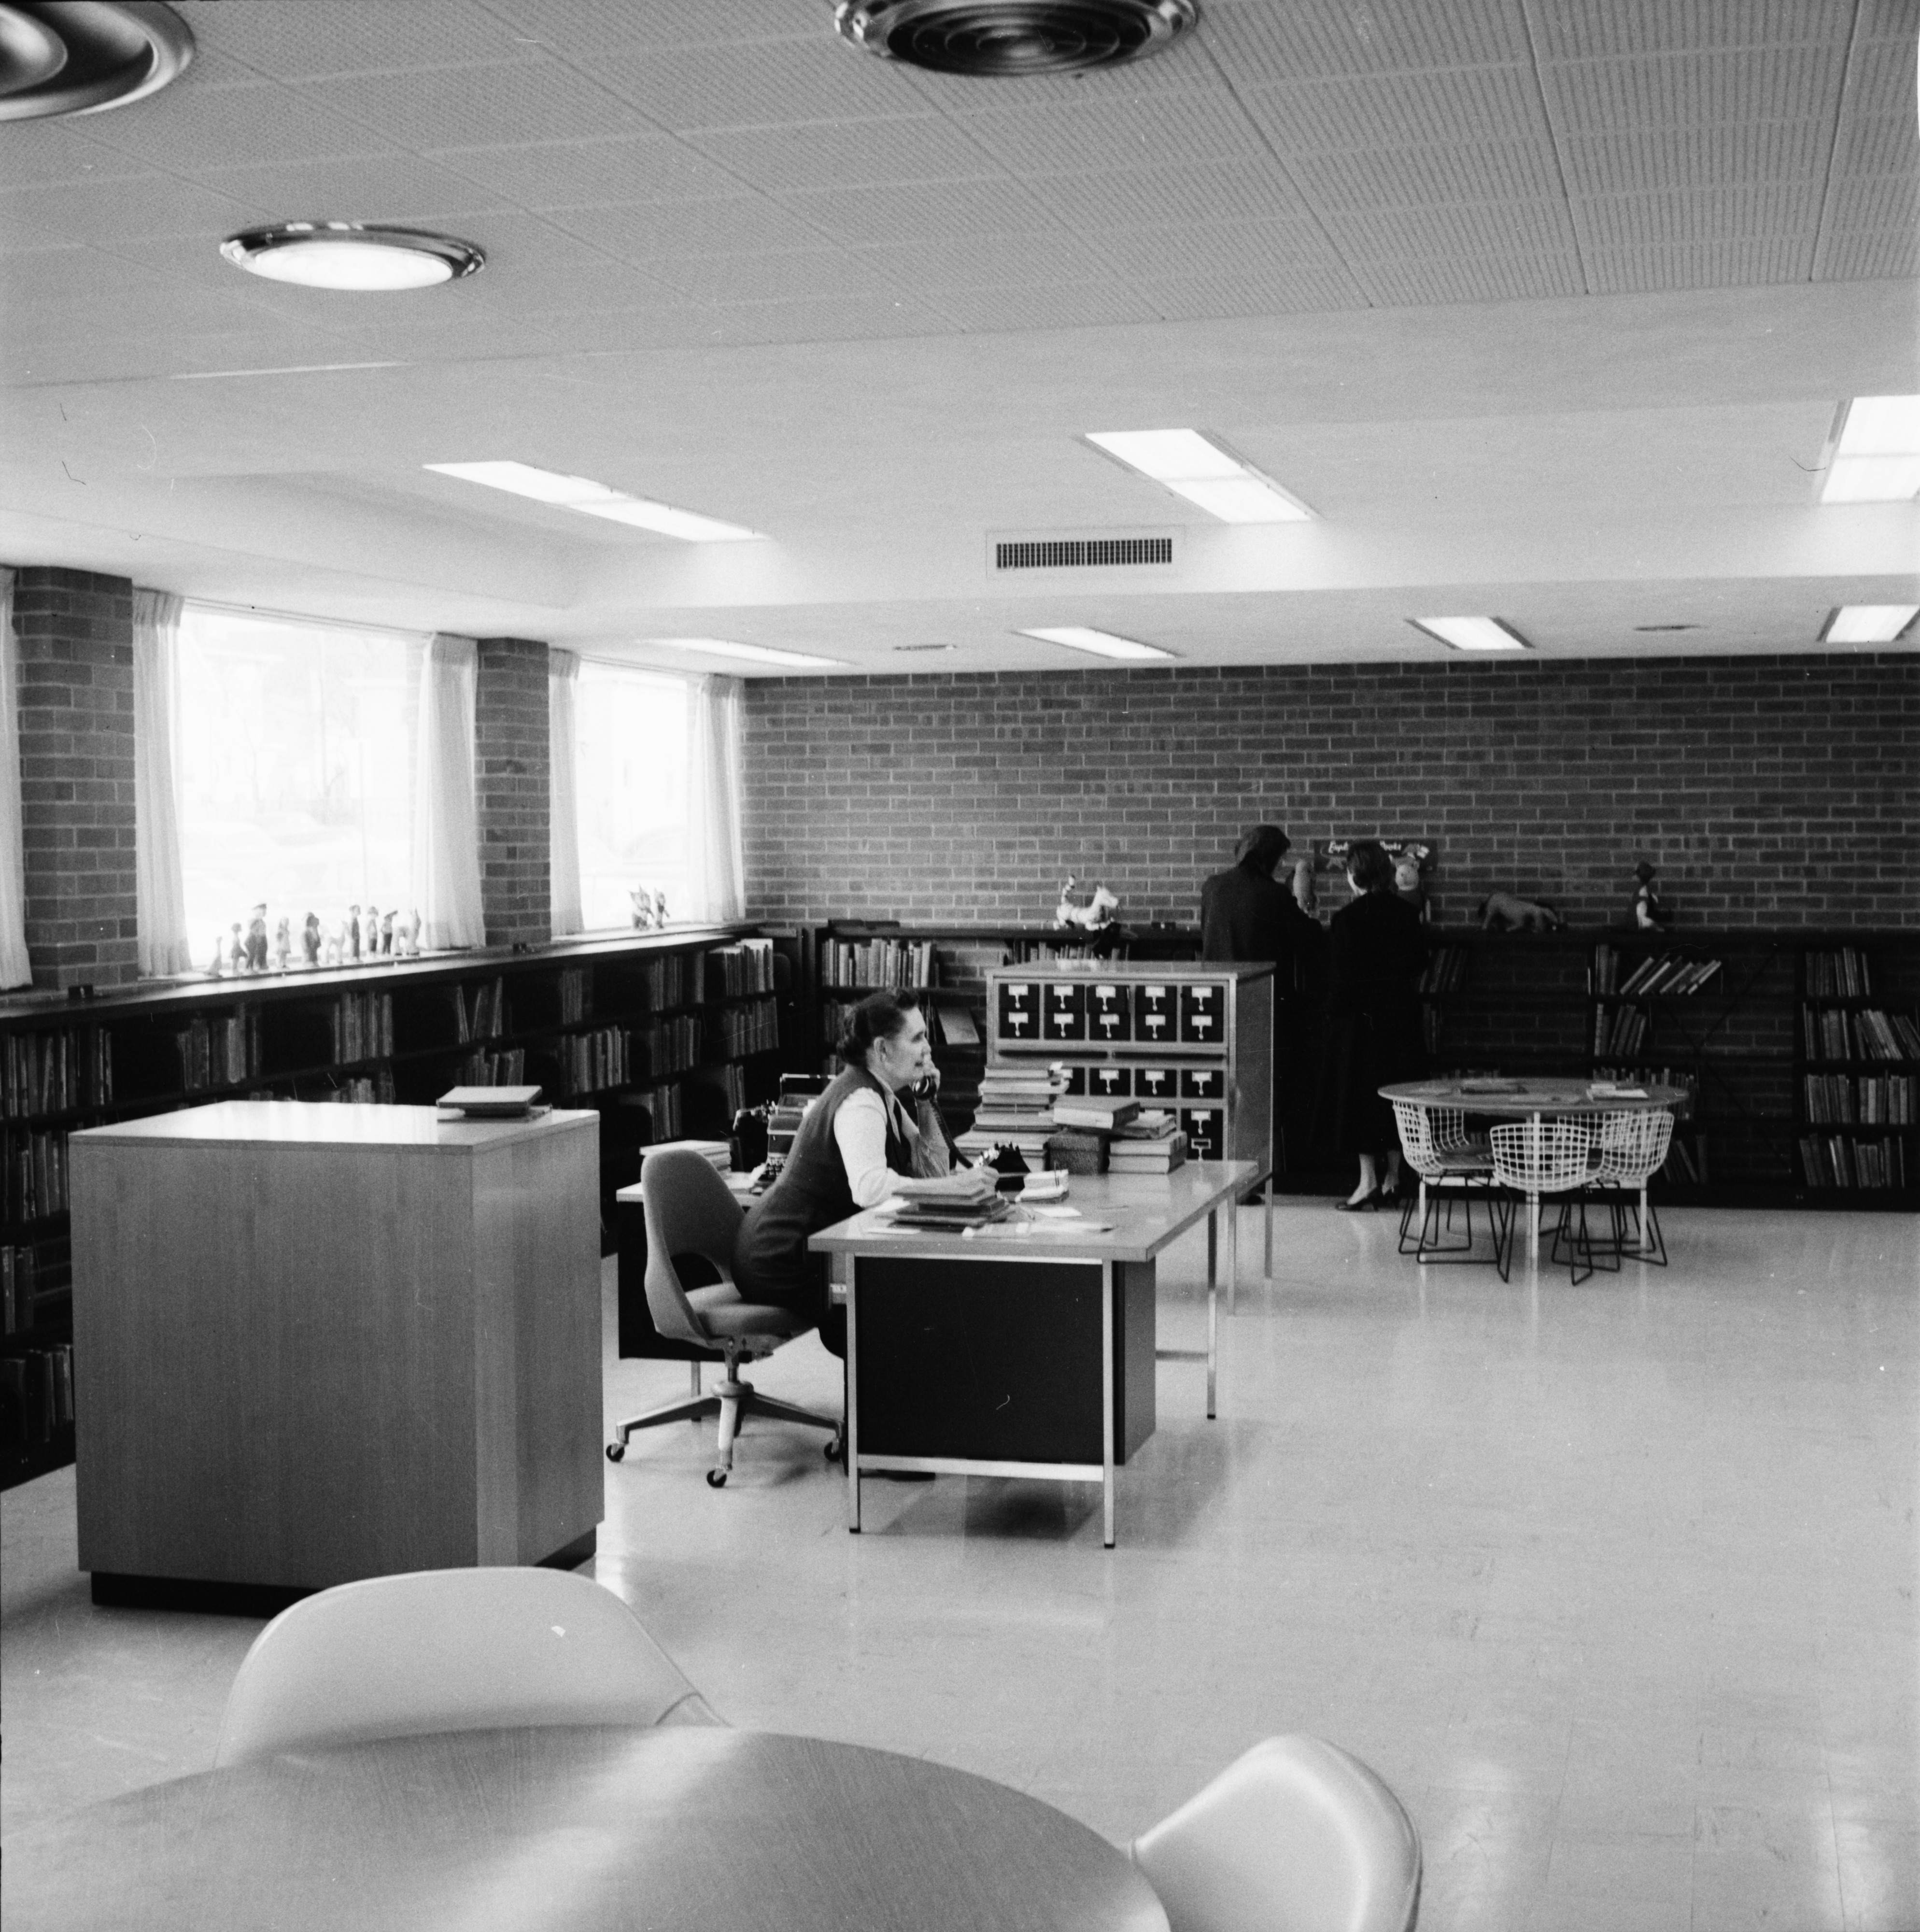 Miss Hazel Keedle, Head of the Children's Department, in New Ann Arbor Public Library, March 1958 image